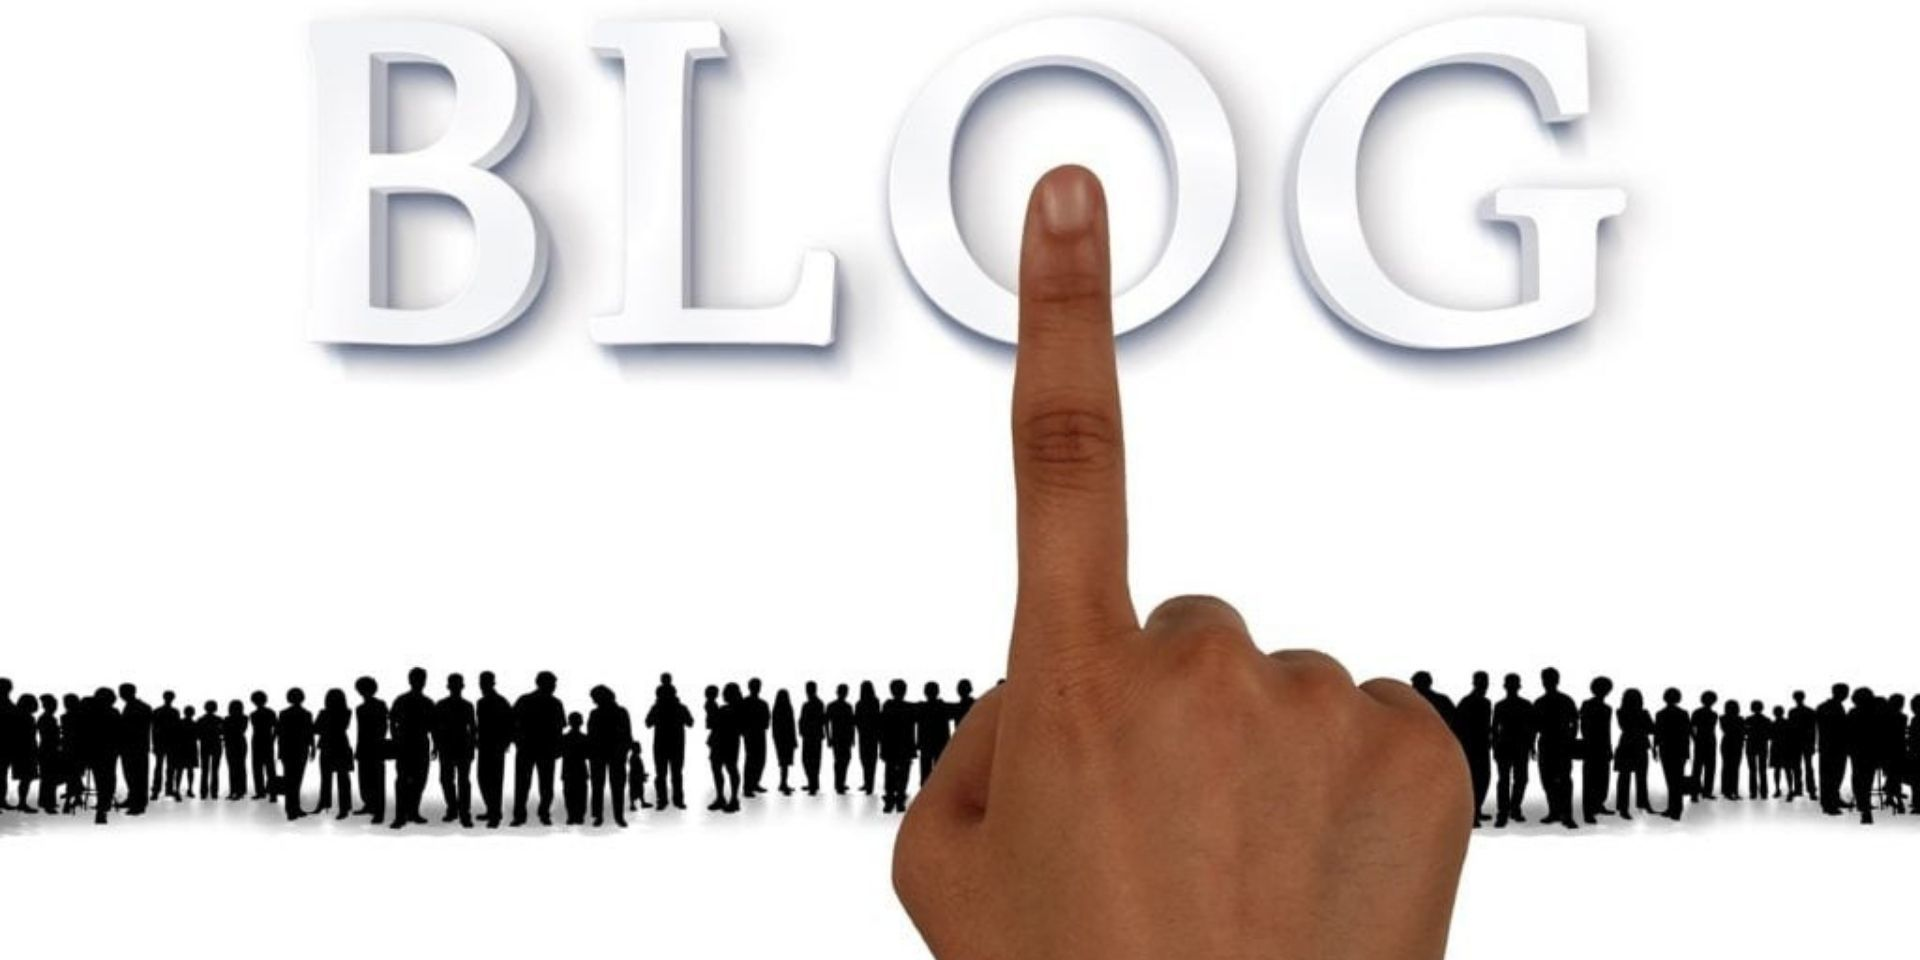 blogging about your medical practice